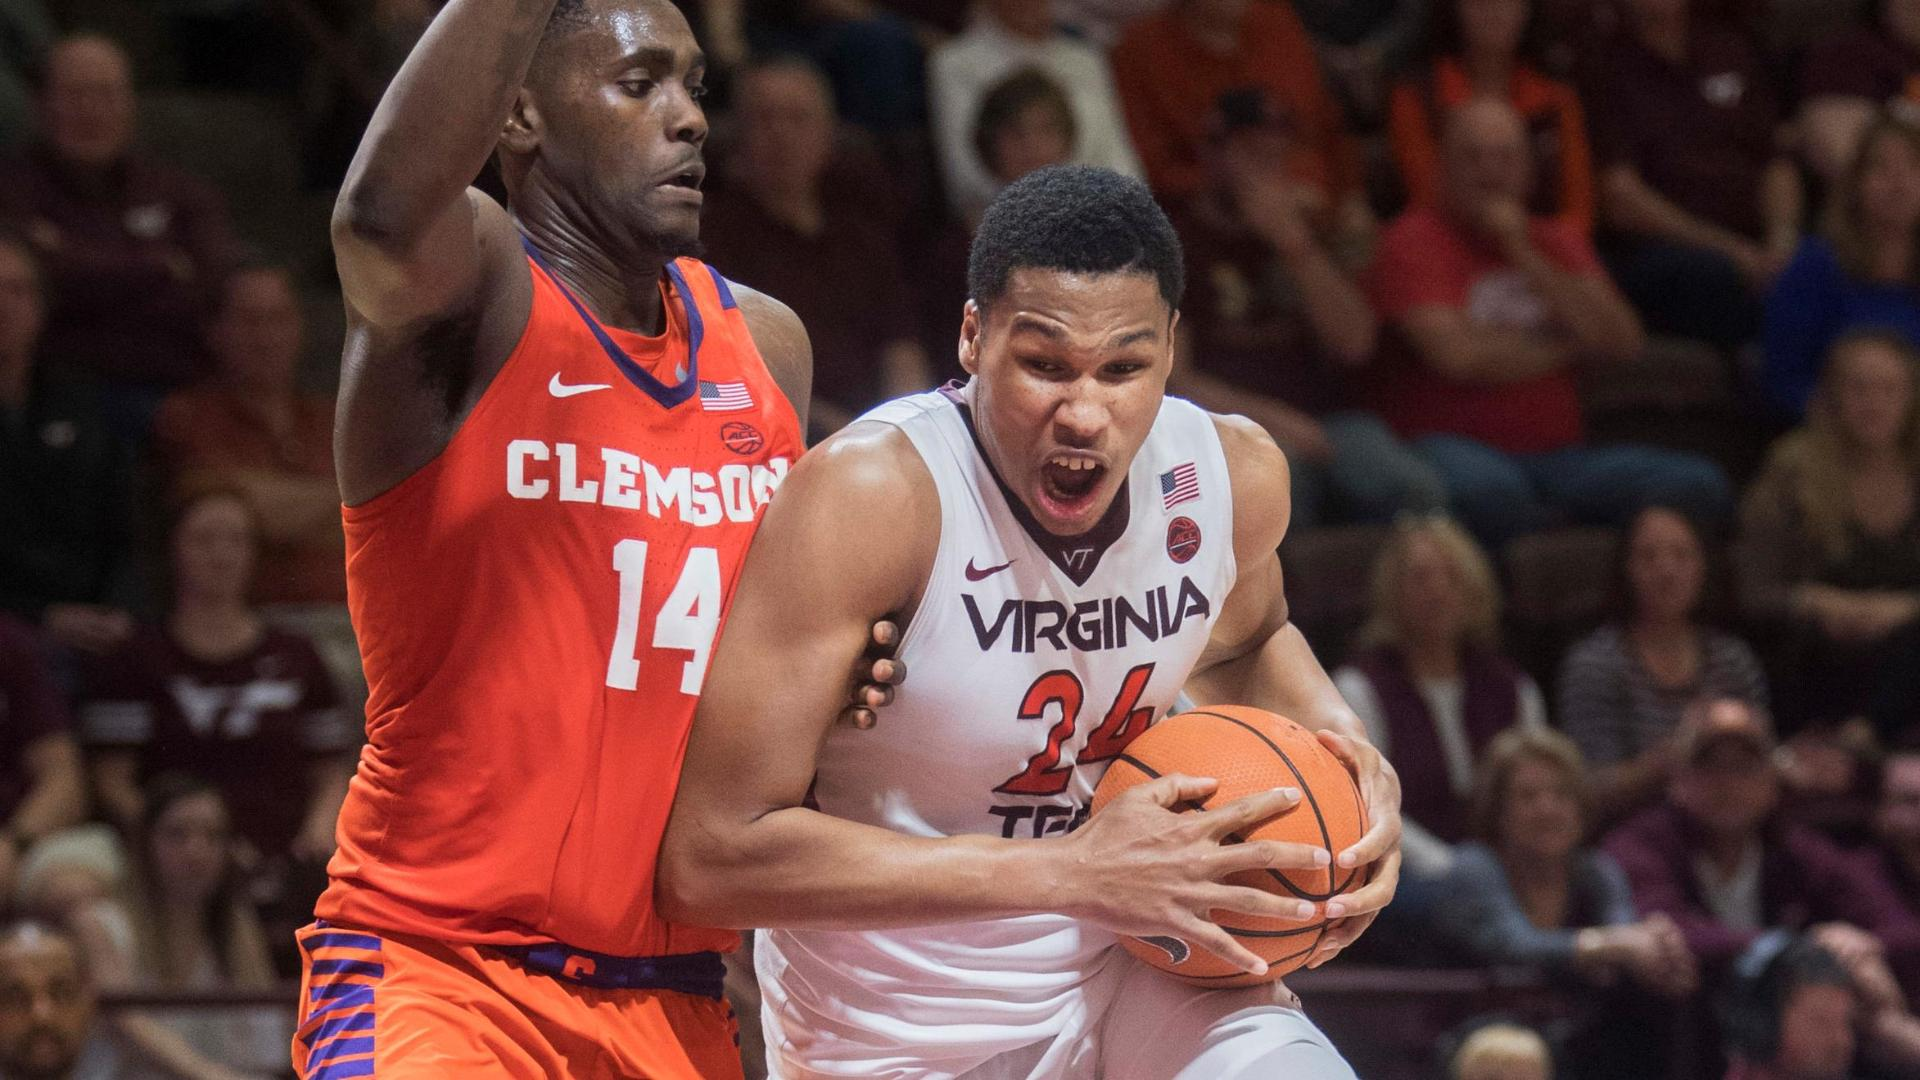 Virginia Tech takes down Clemson